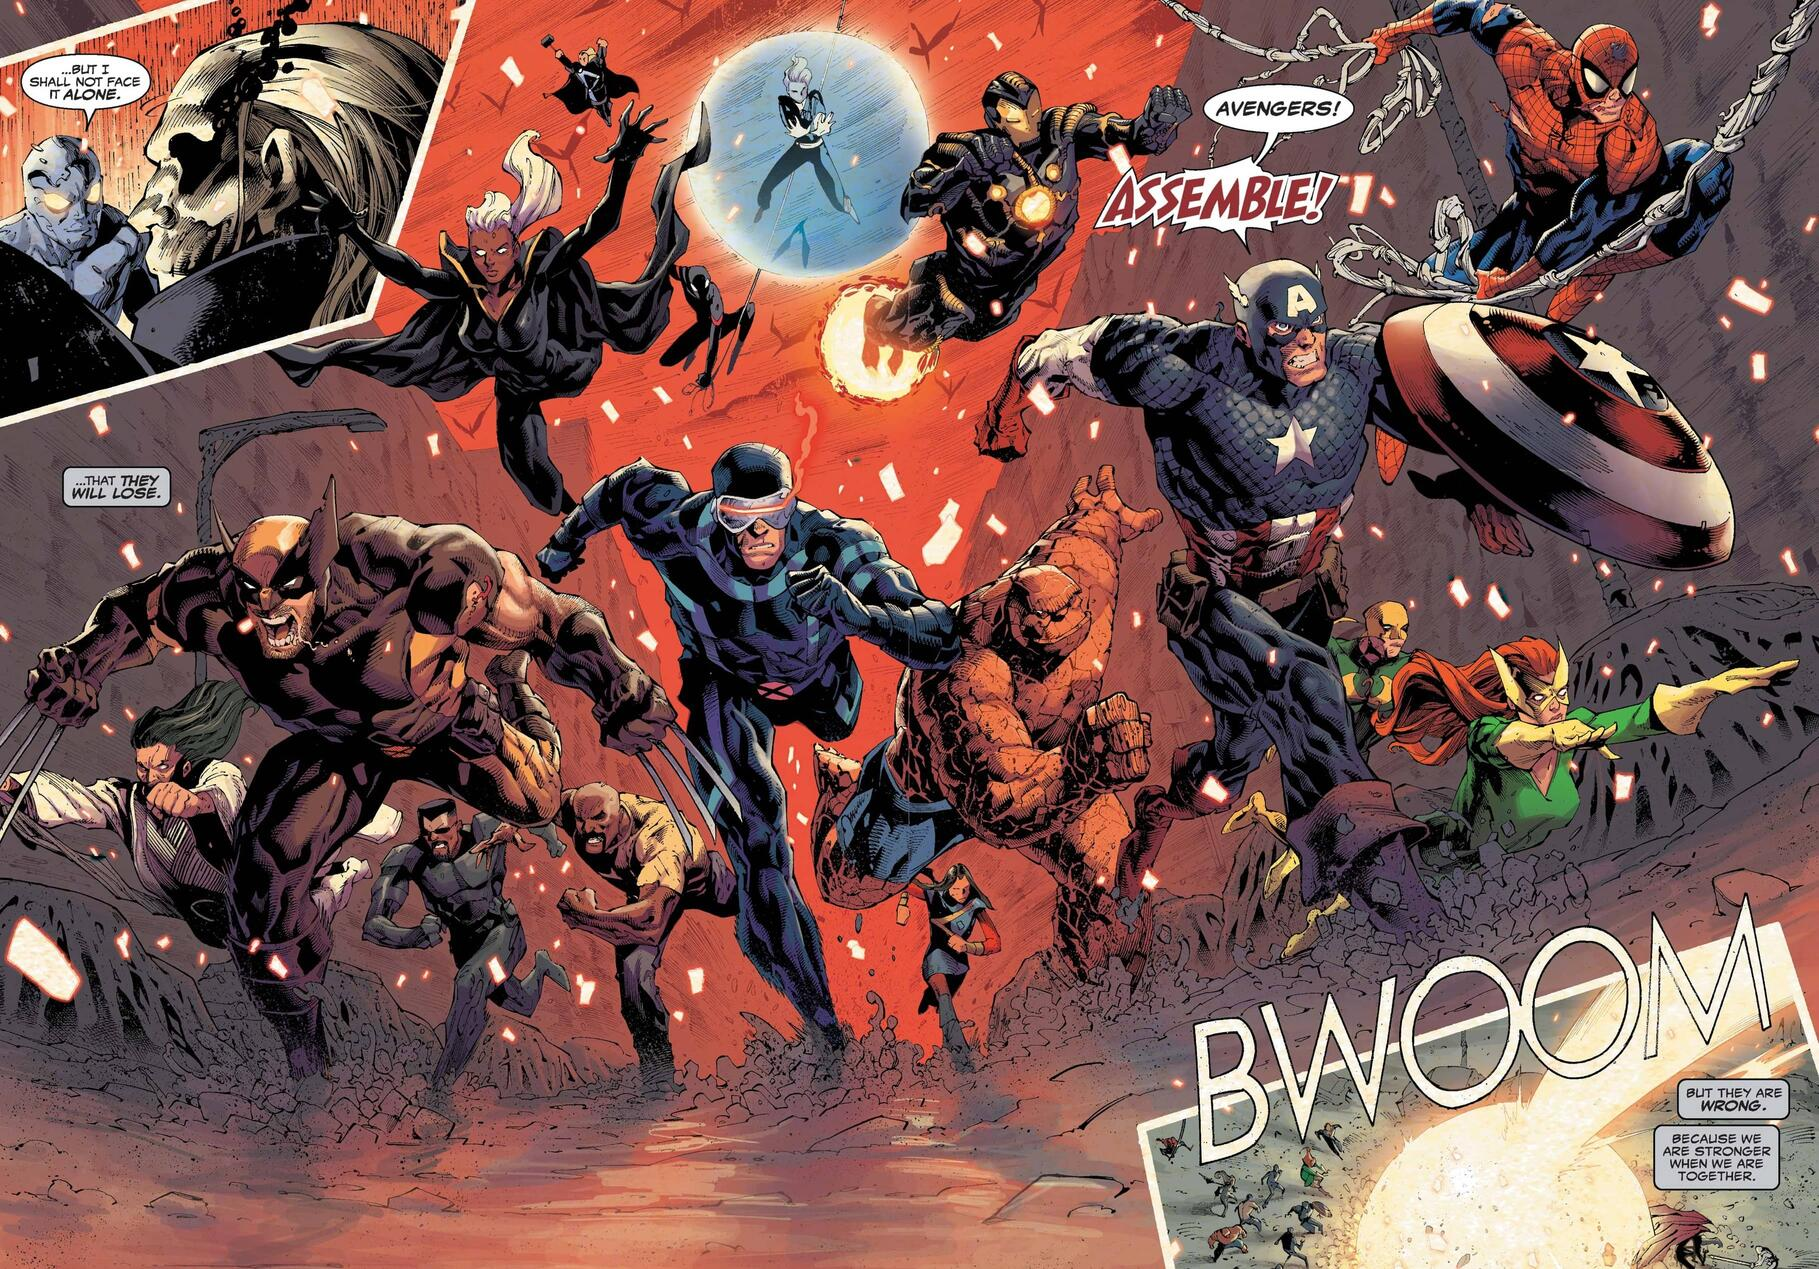 Avengers and X-Men face Knull head-on.